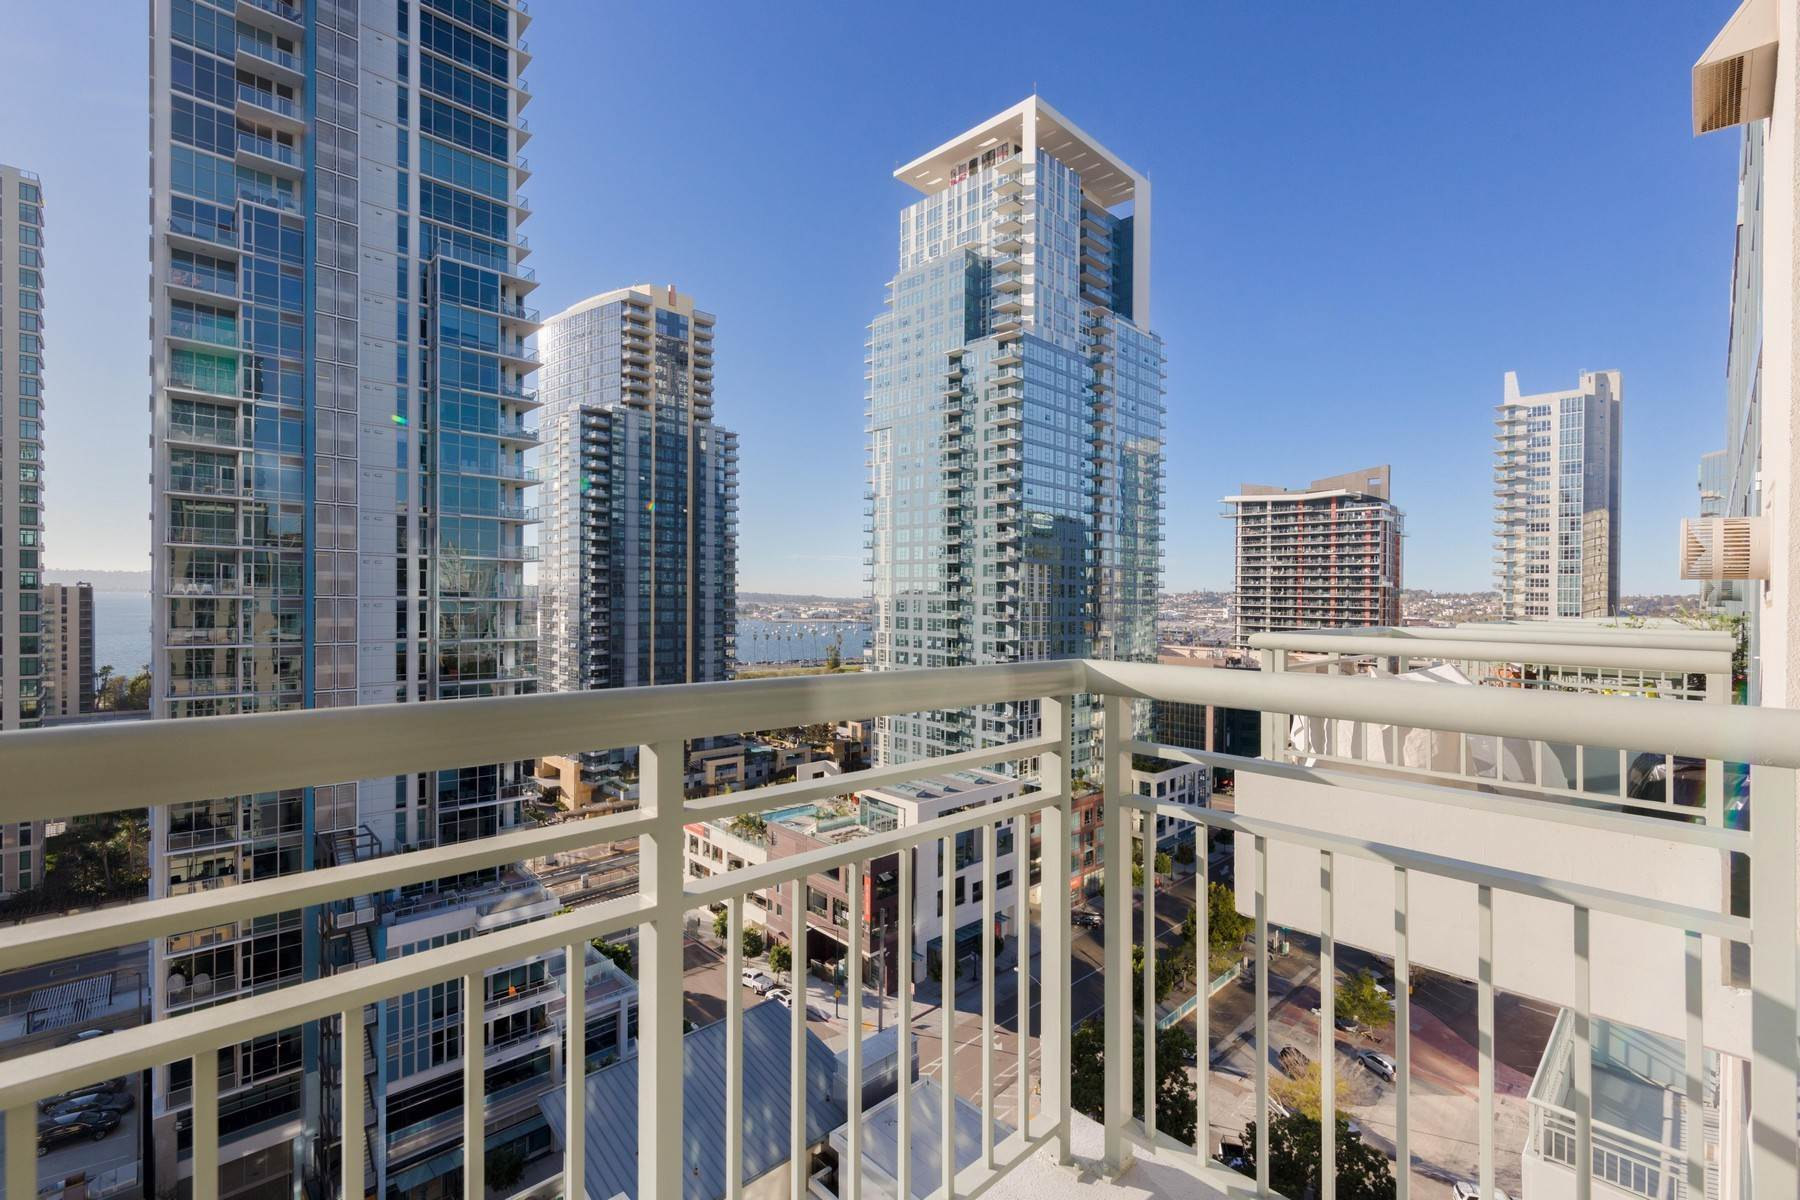 Condominiums for Sale at 1240 India Street, San Diego, CA 92101 1240 India Street, Unit 1511 San Diego, California 92101 United States